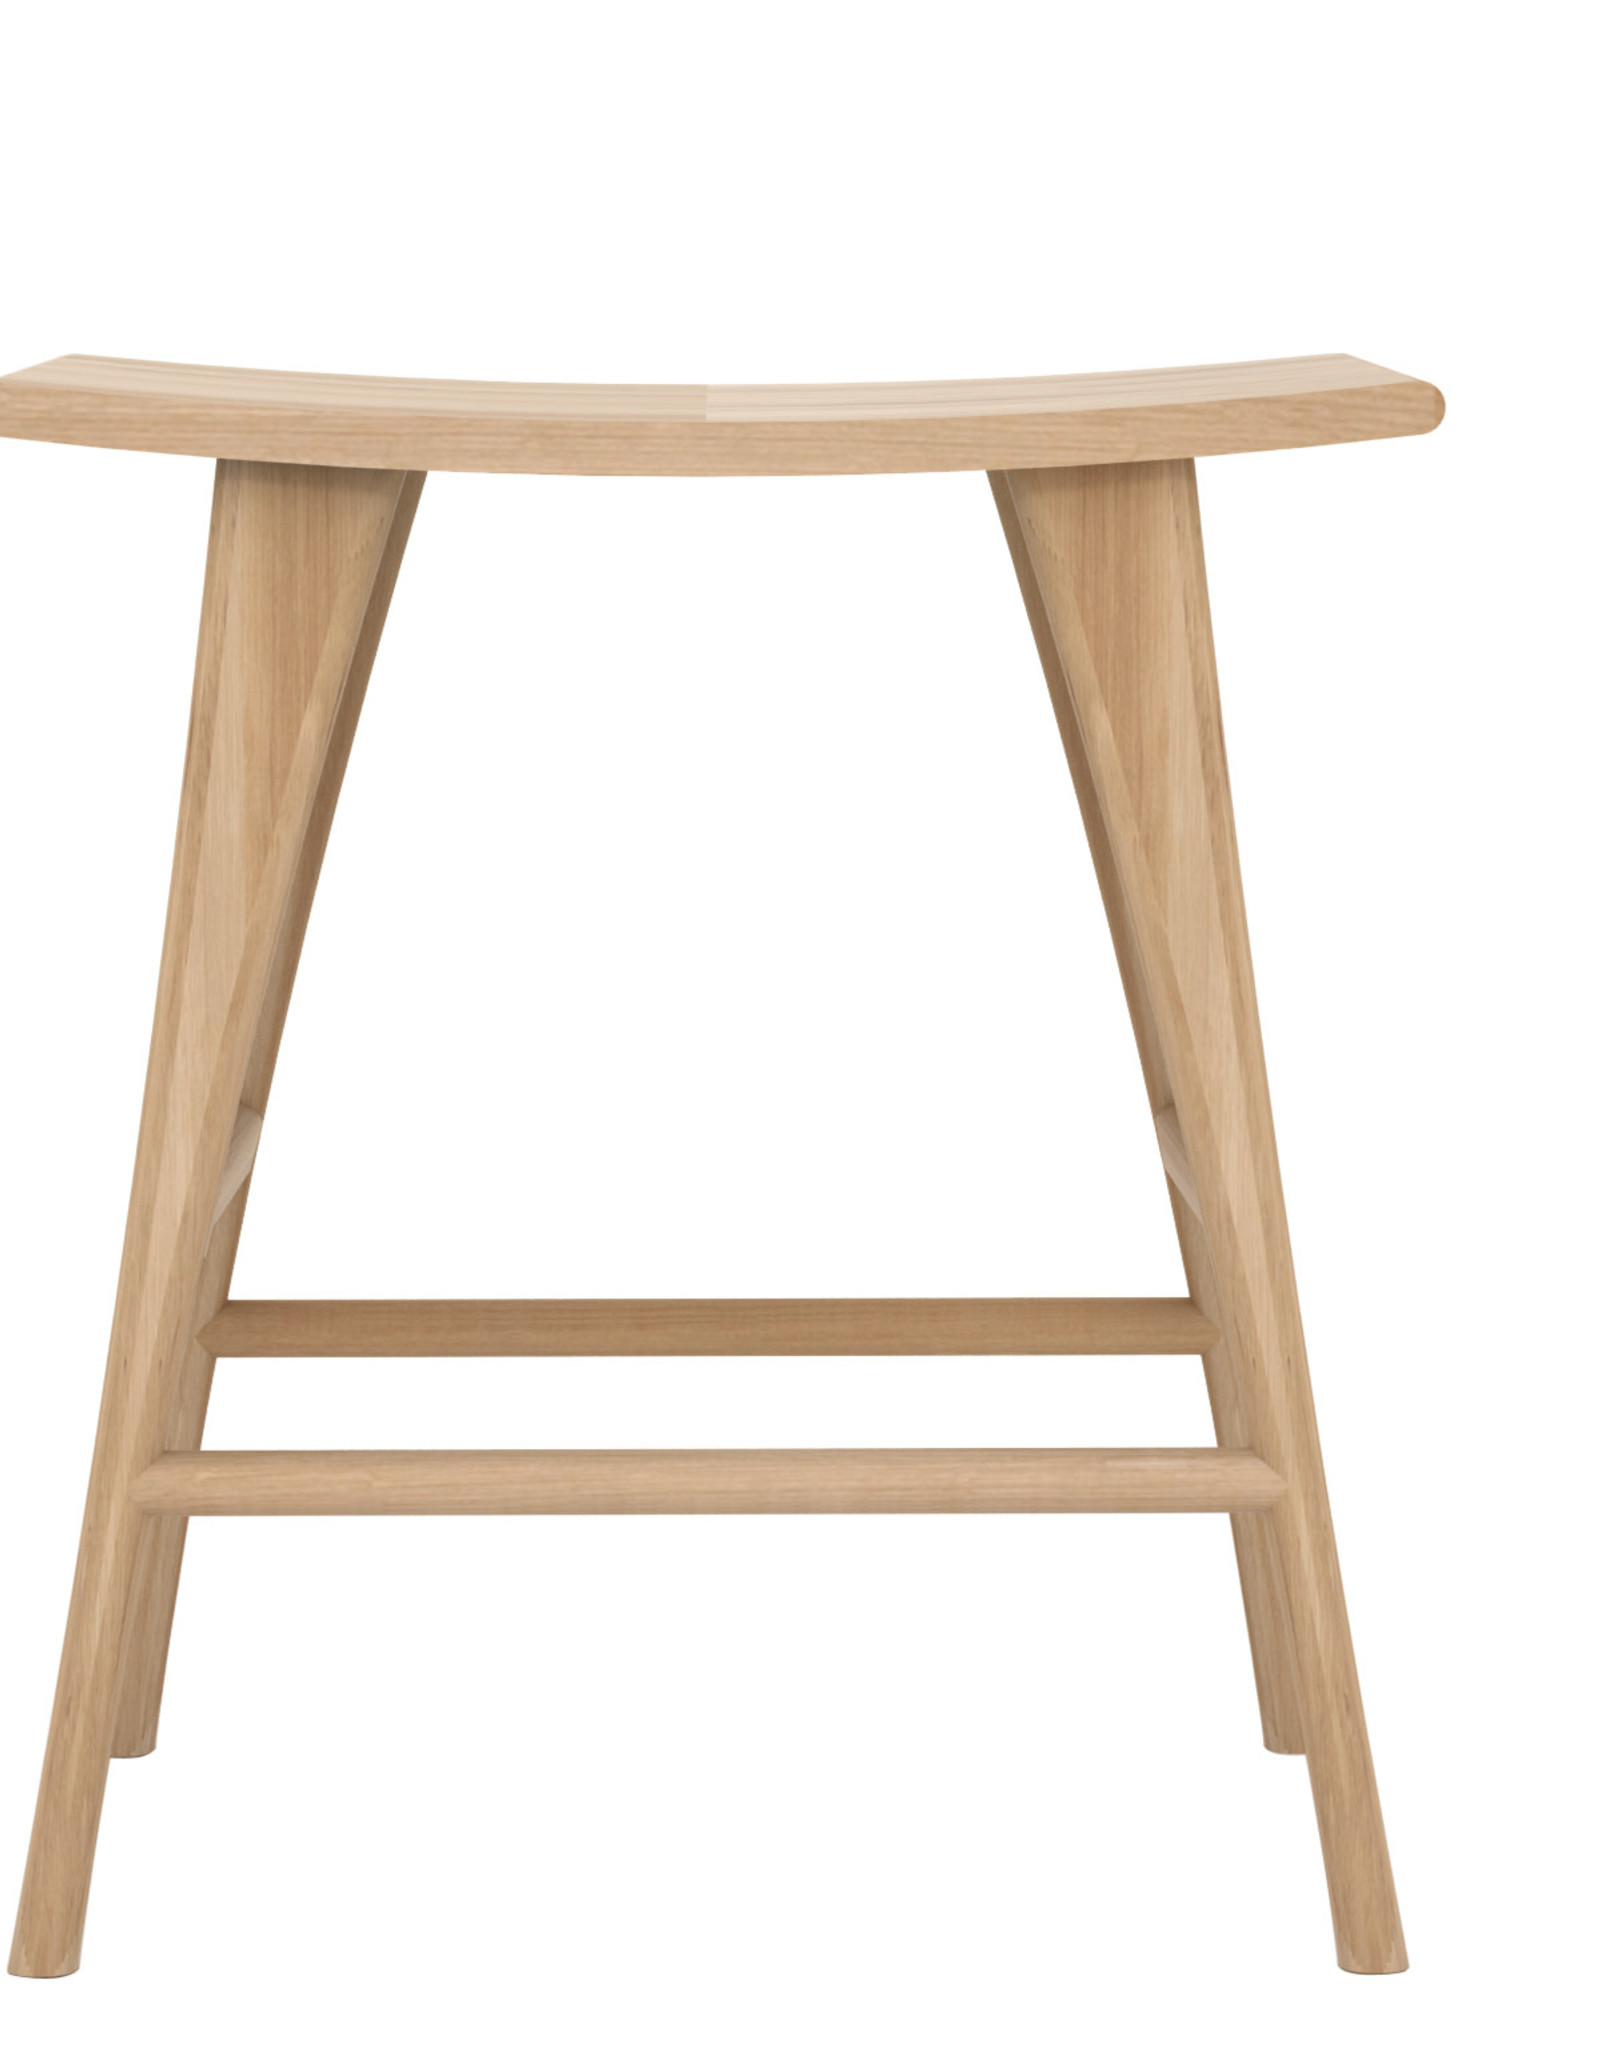 Oak Osso counter stool - contract grade - varnished